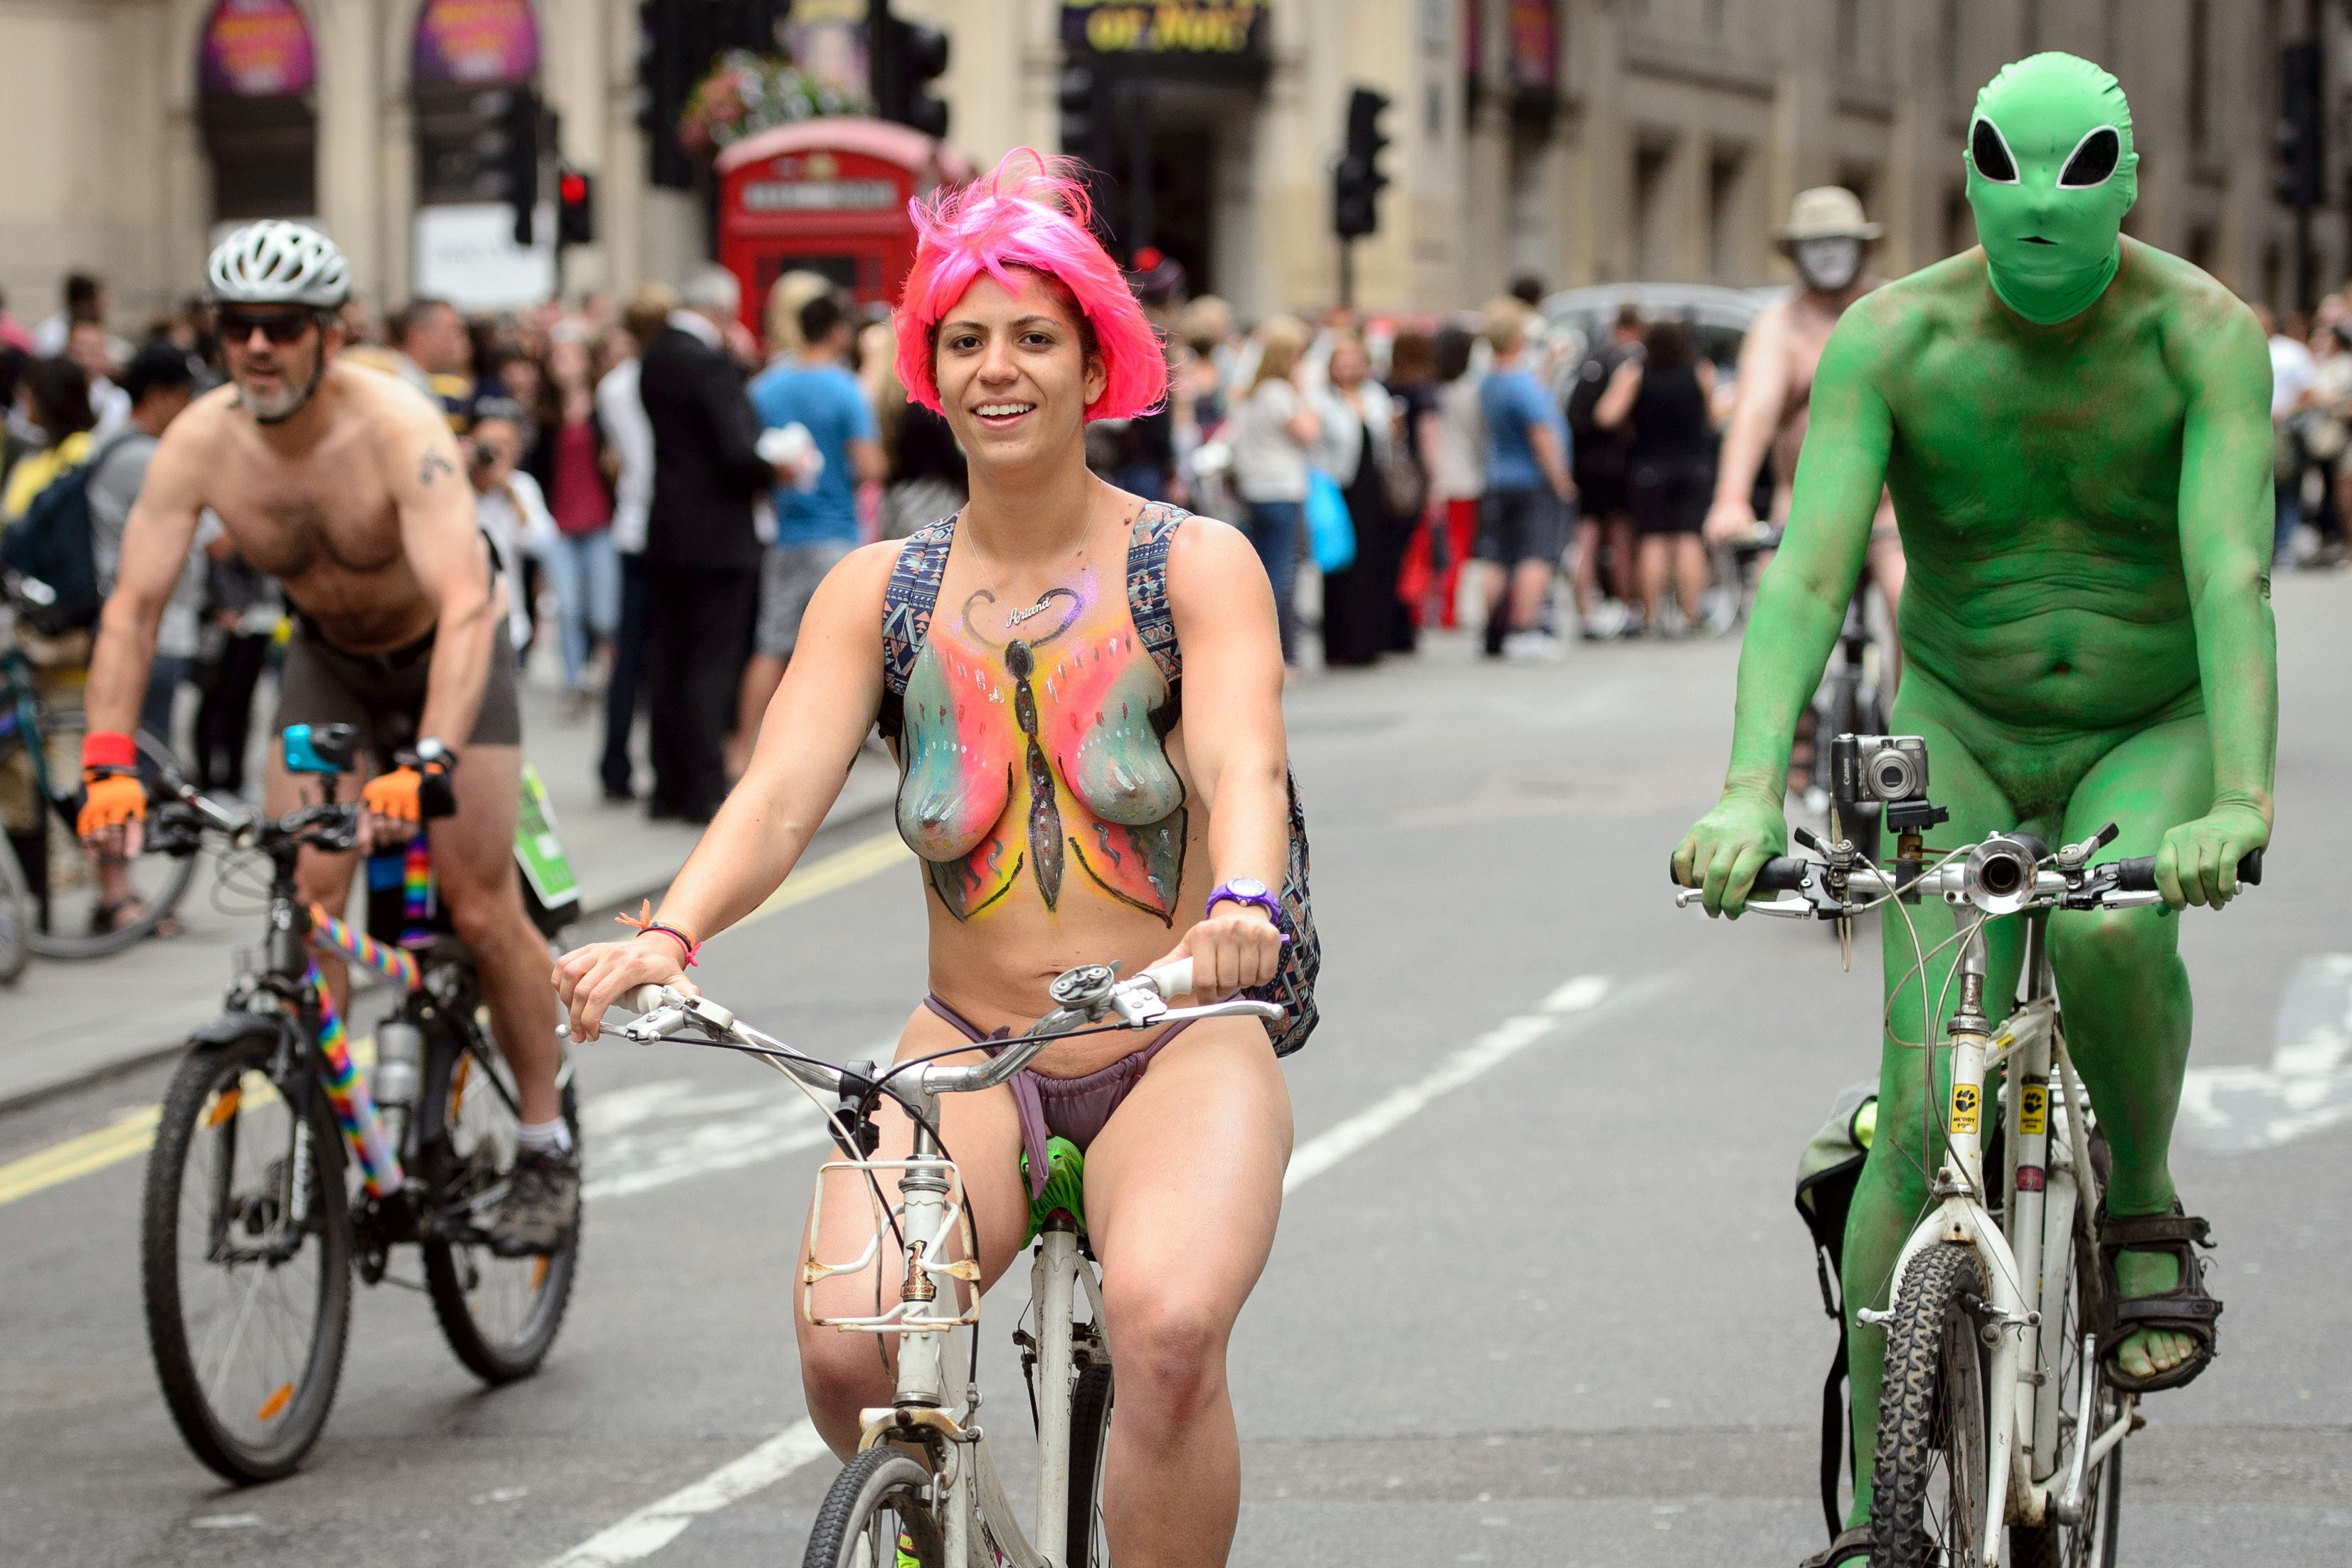 Cyclists Take Part In The Annual World Naked Bike Ride In -7463